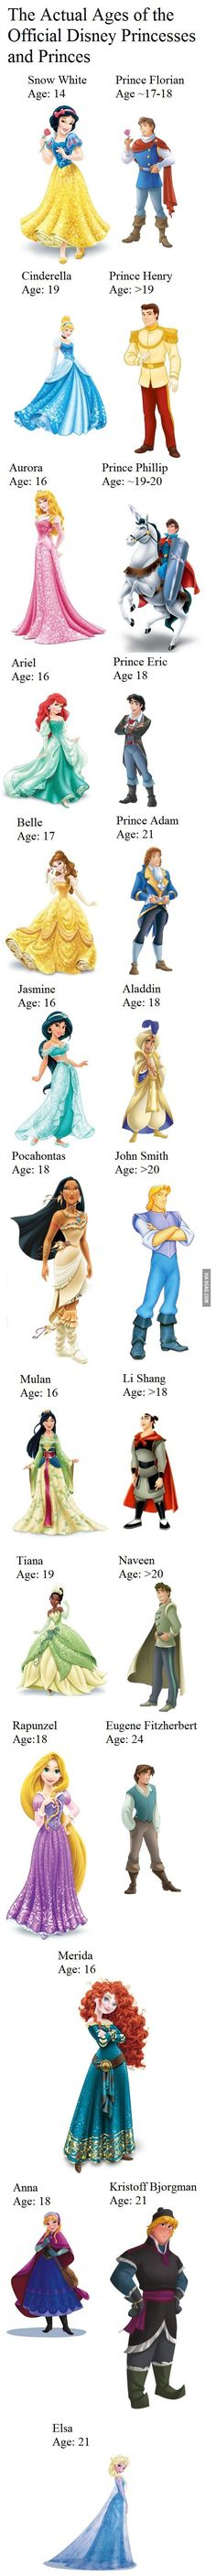 Interesting... but with the actual story of Pocahontas, she was around the ages of 12 to 15 and John Smith was in his late twenties.